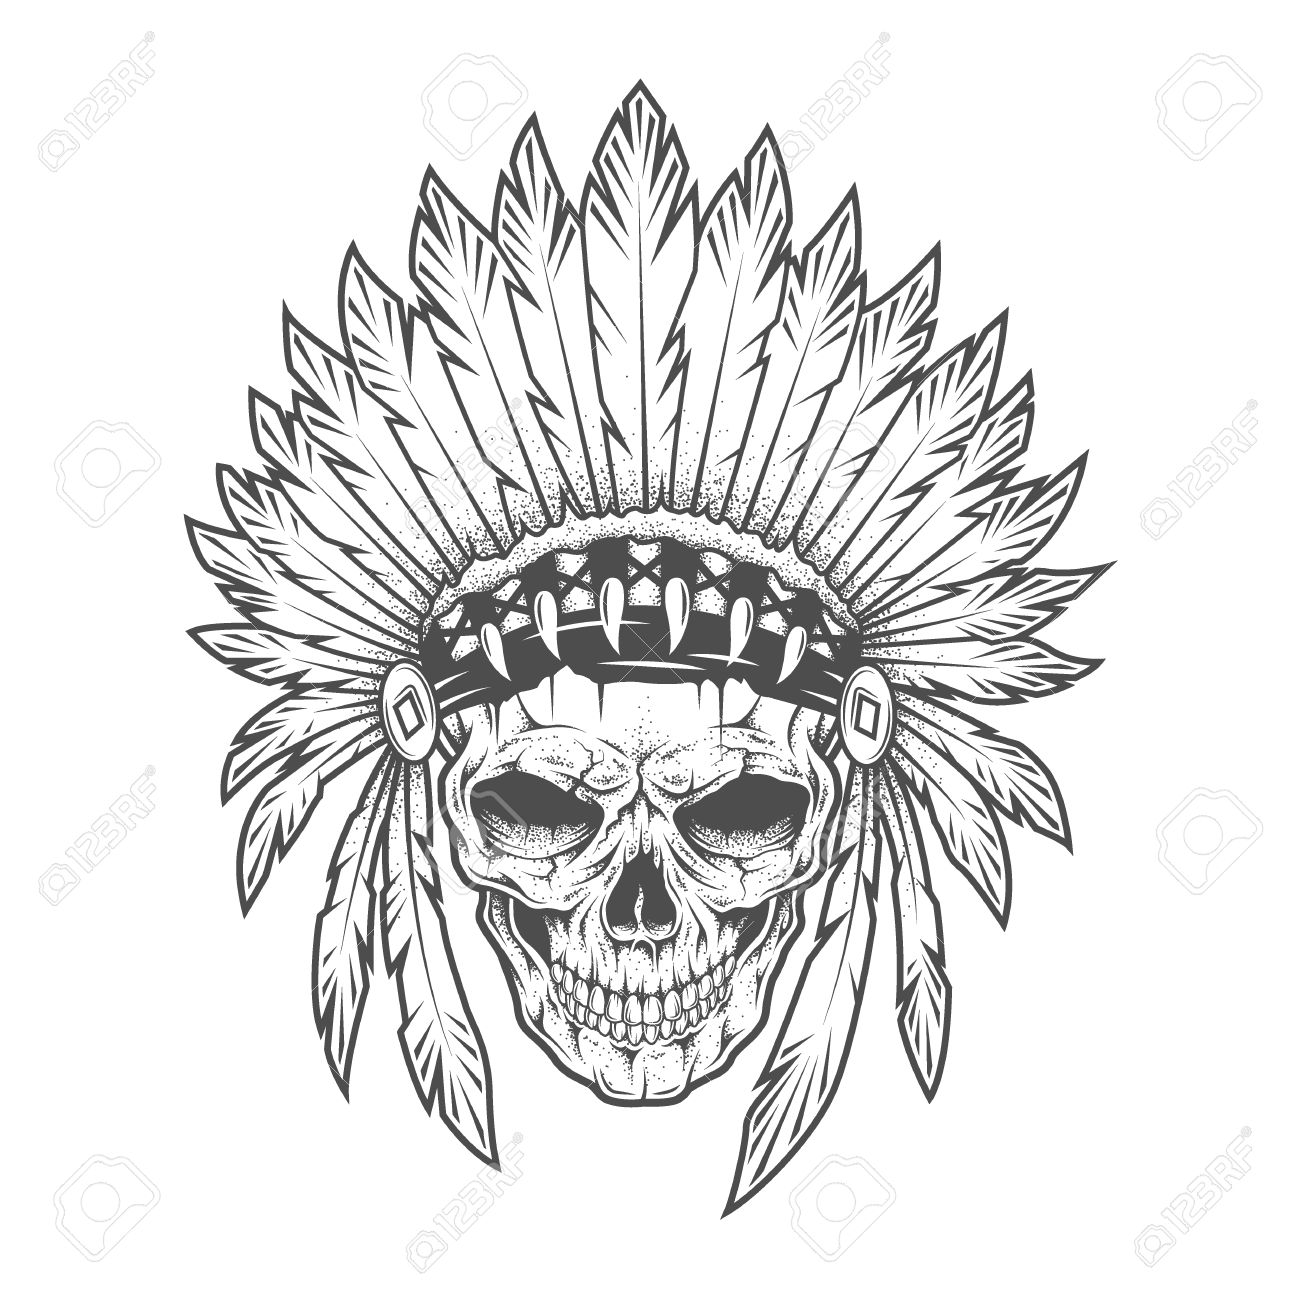 1300x1300 Indian Skull With Feathers Royalty Free Cliparts, Vectors,